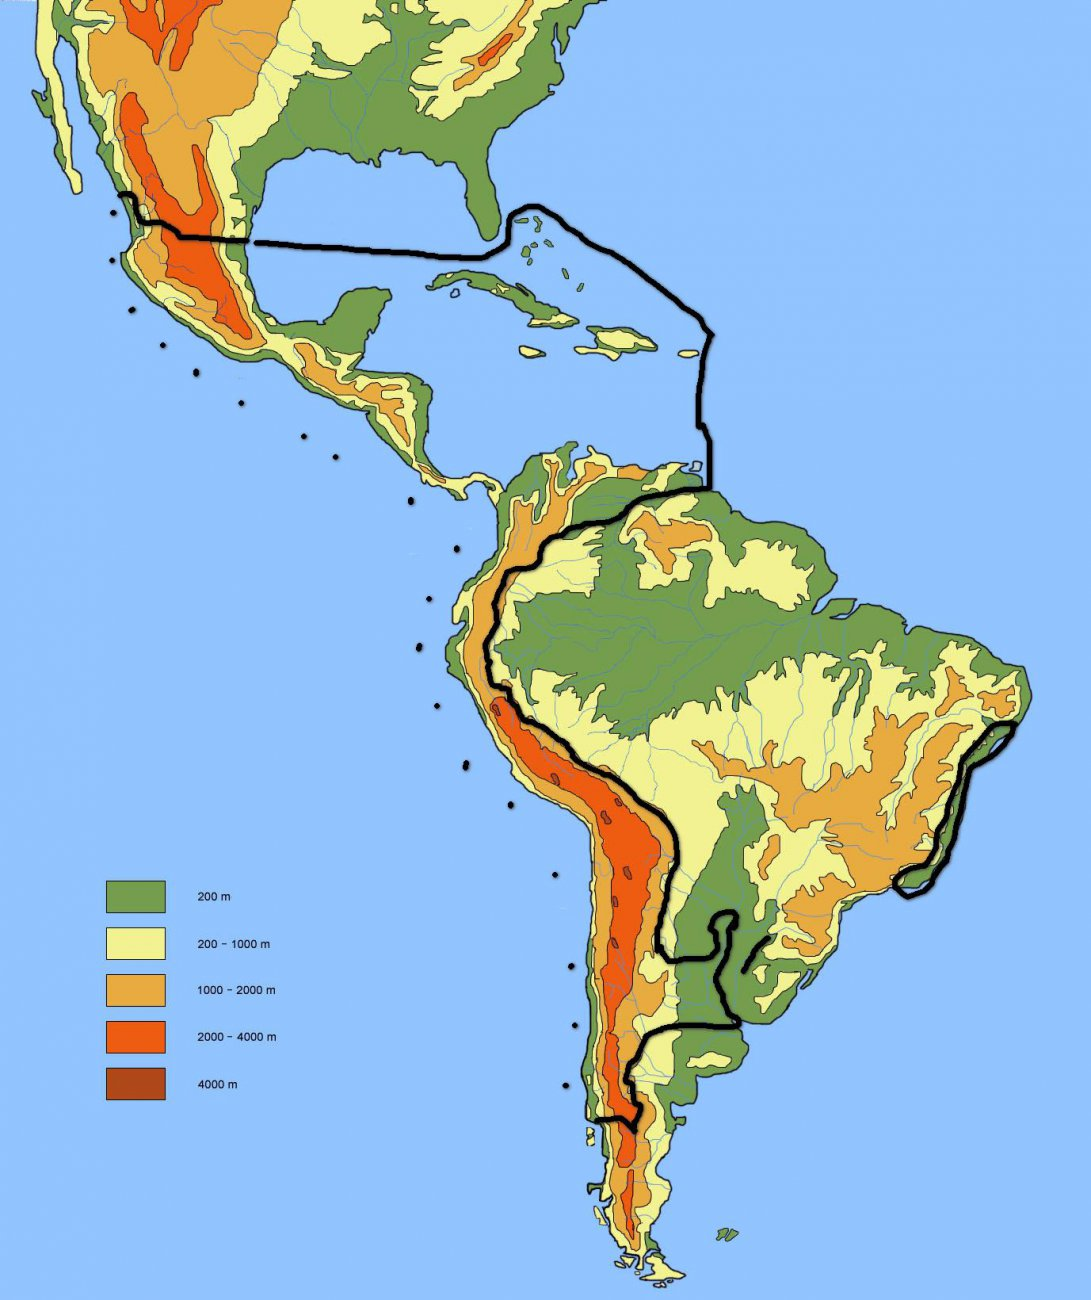 large_detailed_physical_and_hydrograpbhic_map_of_latin_america.jpg